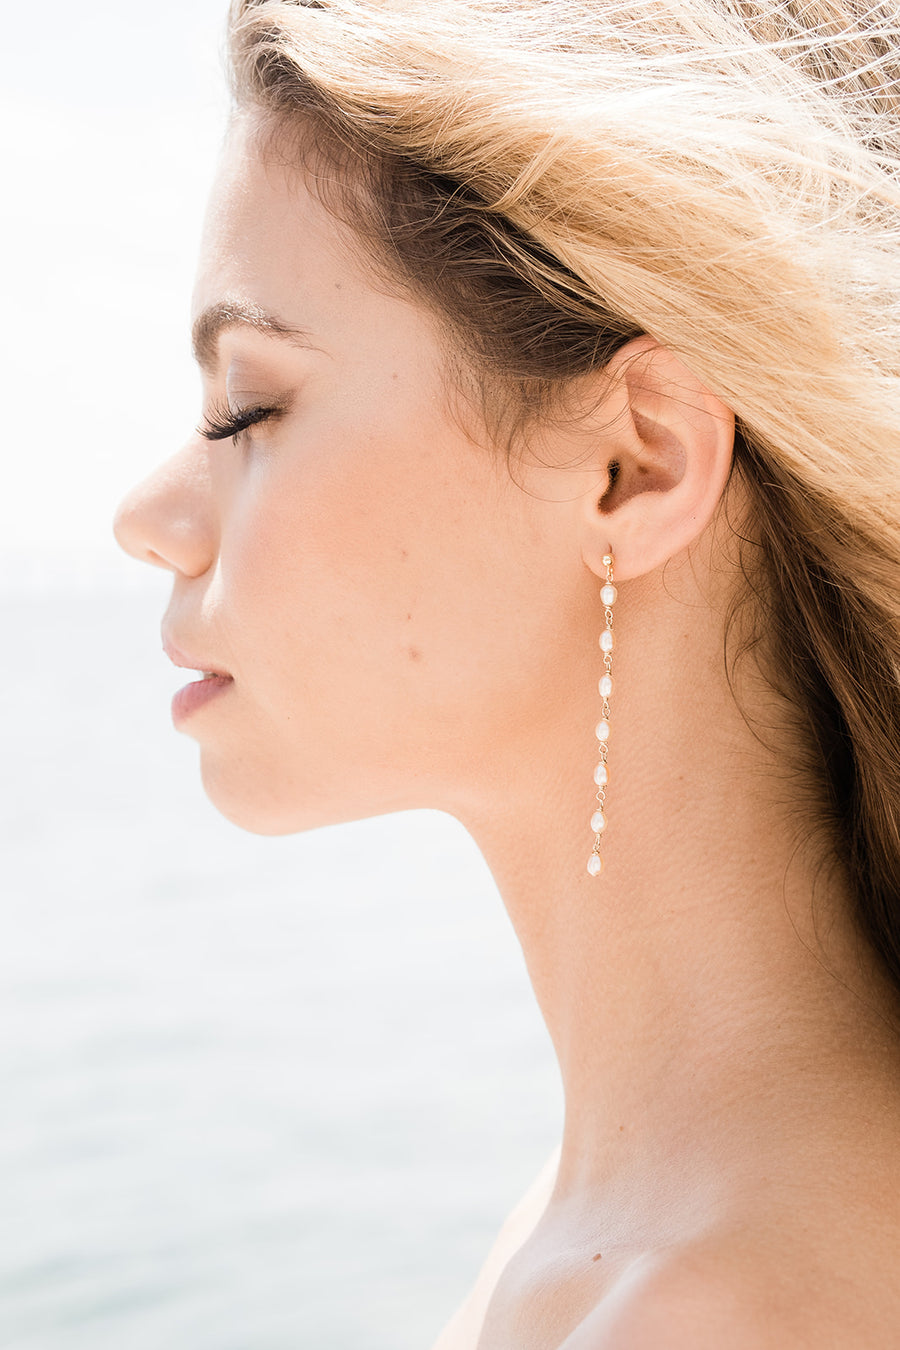 Mini Pearl Drop Earrings by NST Studio - The Beach Bride by Chic Parisien, a destination for beach weddings, bachelorettes and honeymoons